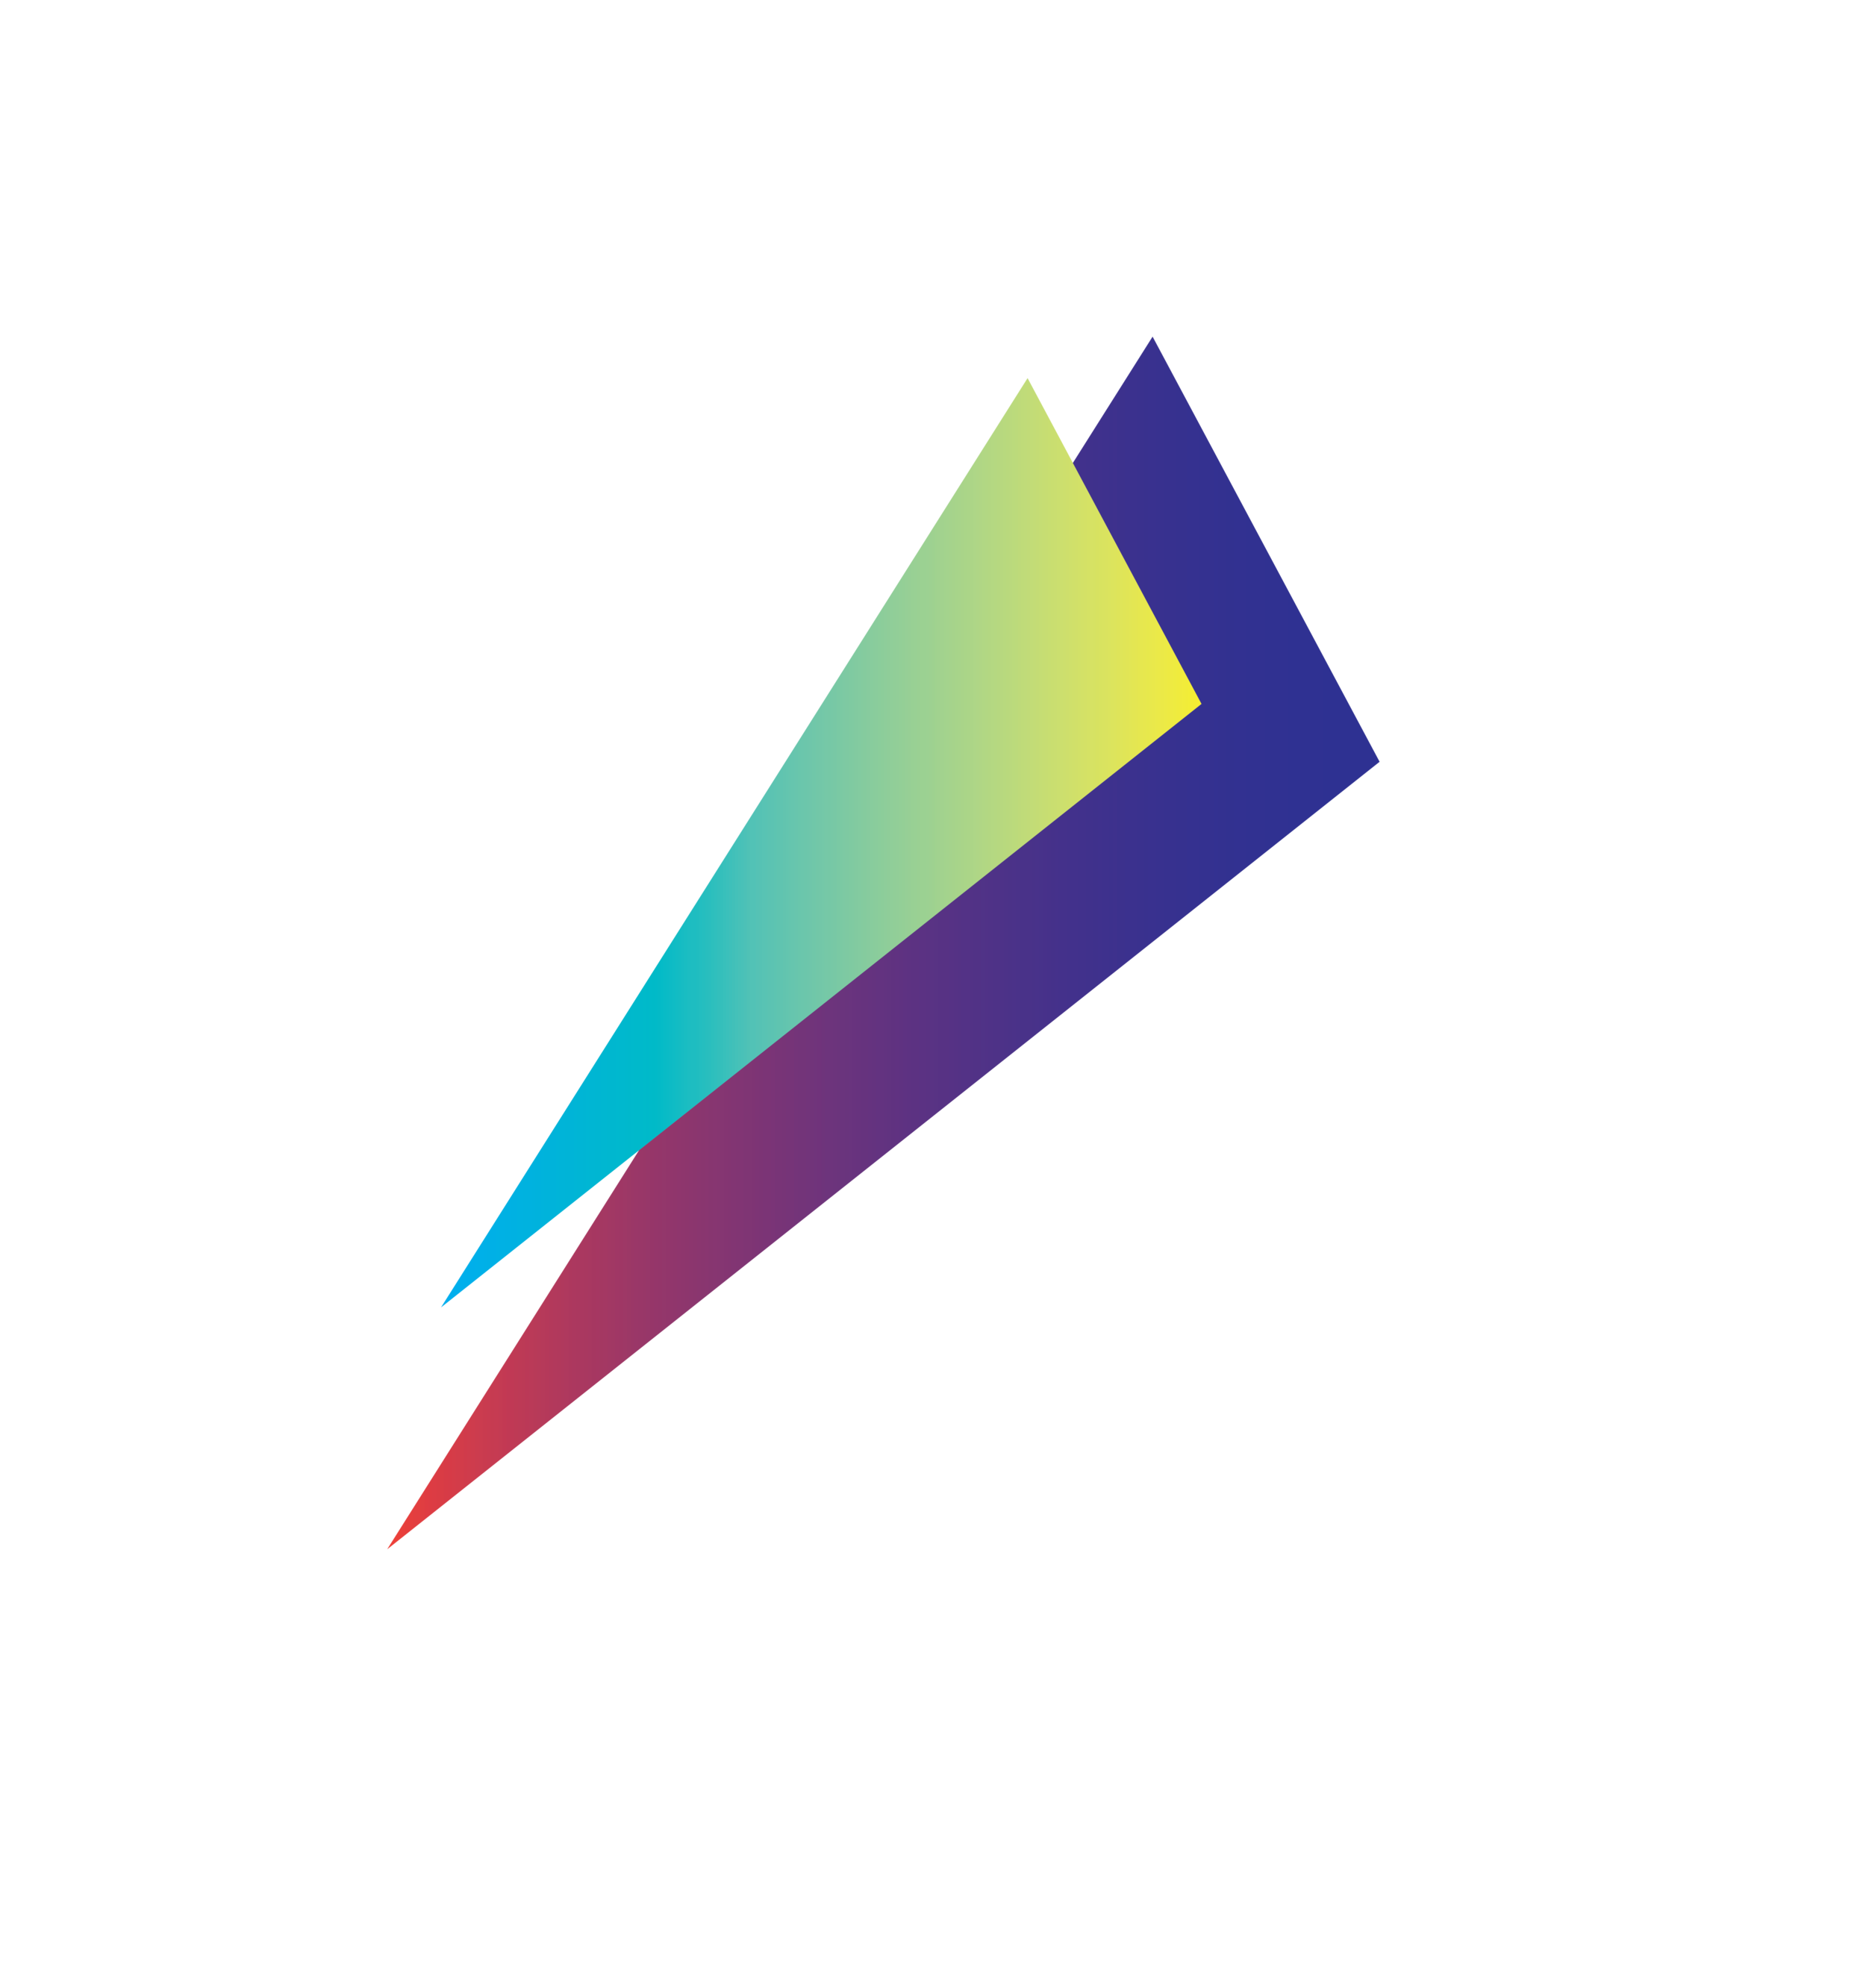 TRIANGLES-29.png